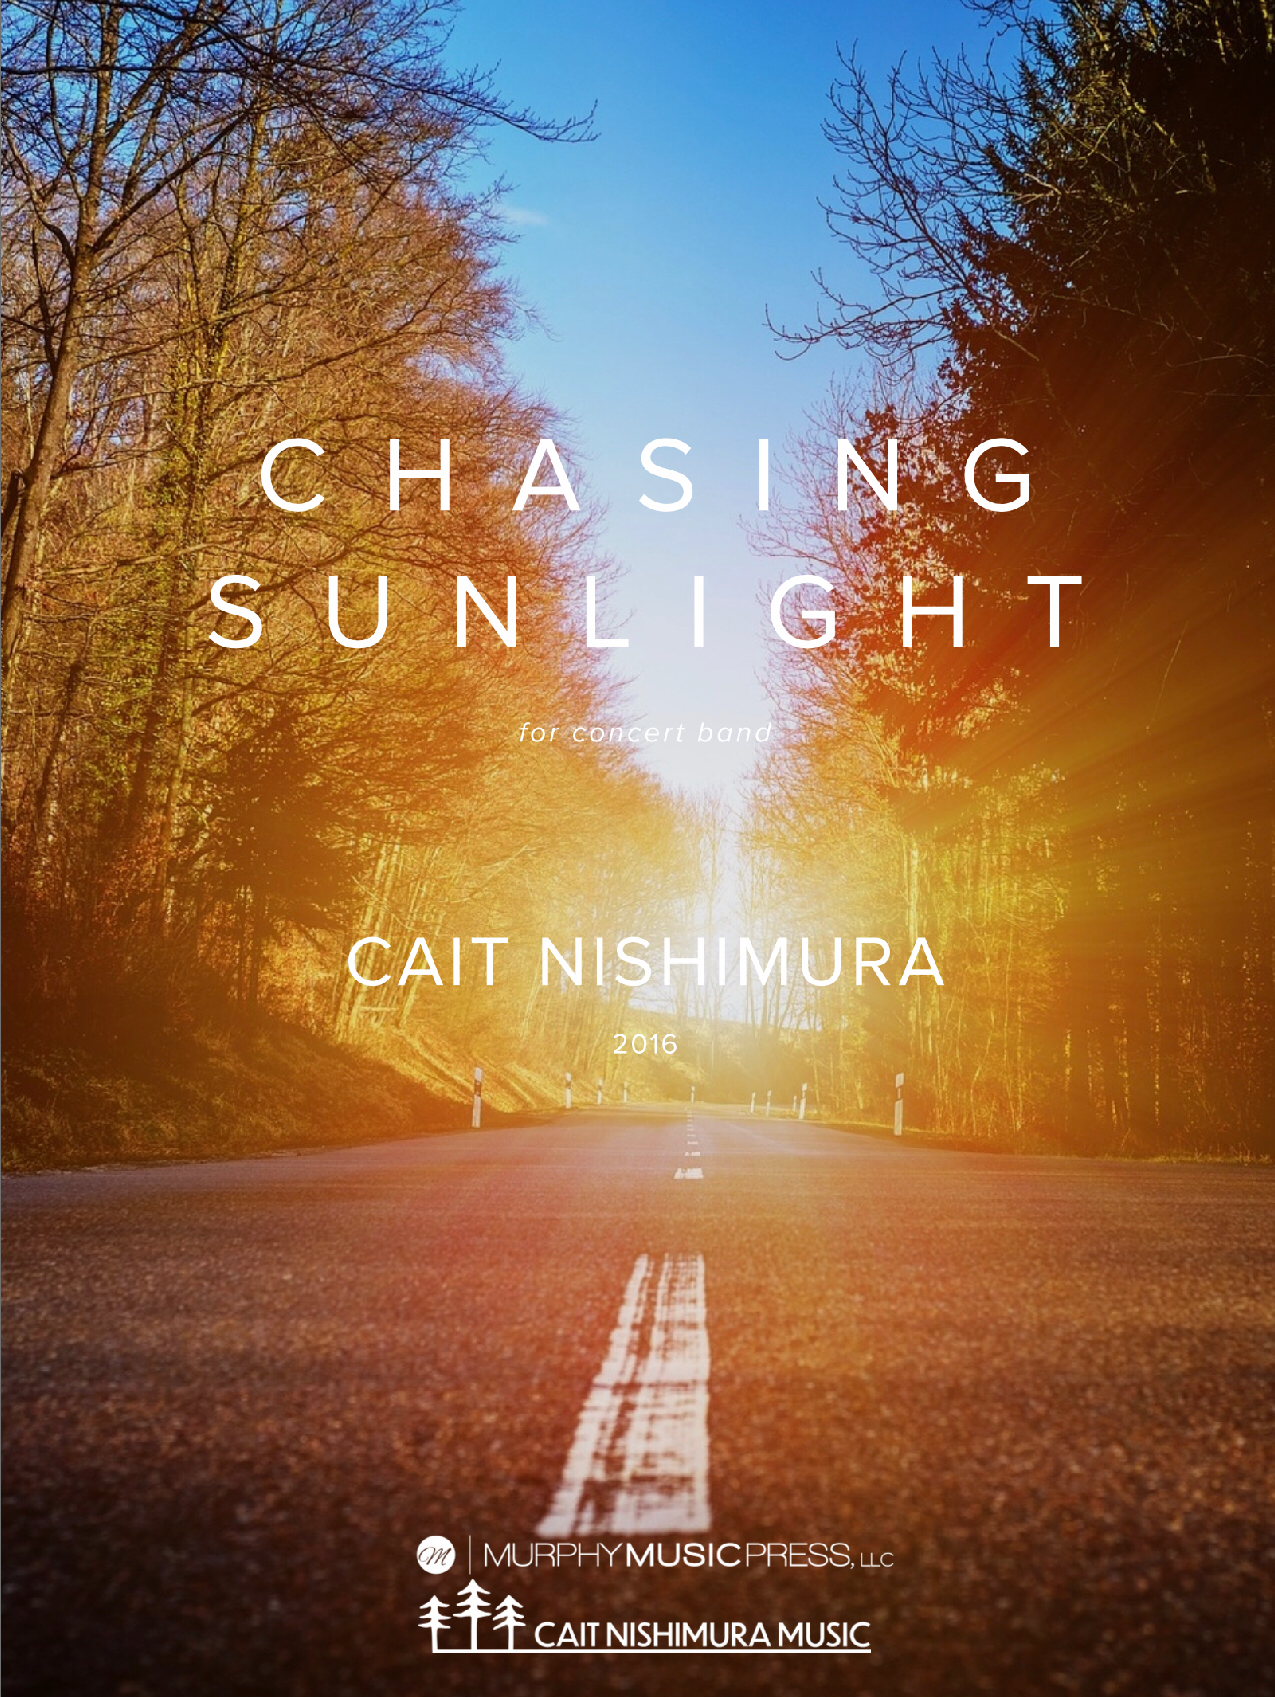 Chasing Sunlight by Cait Nishimura